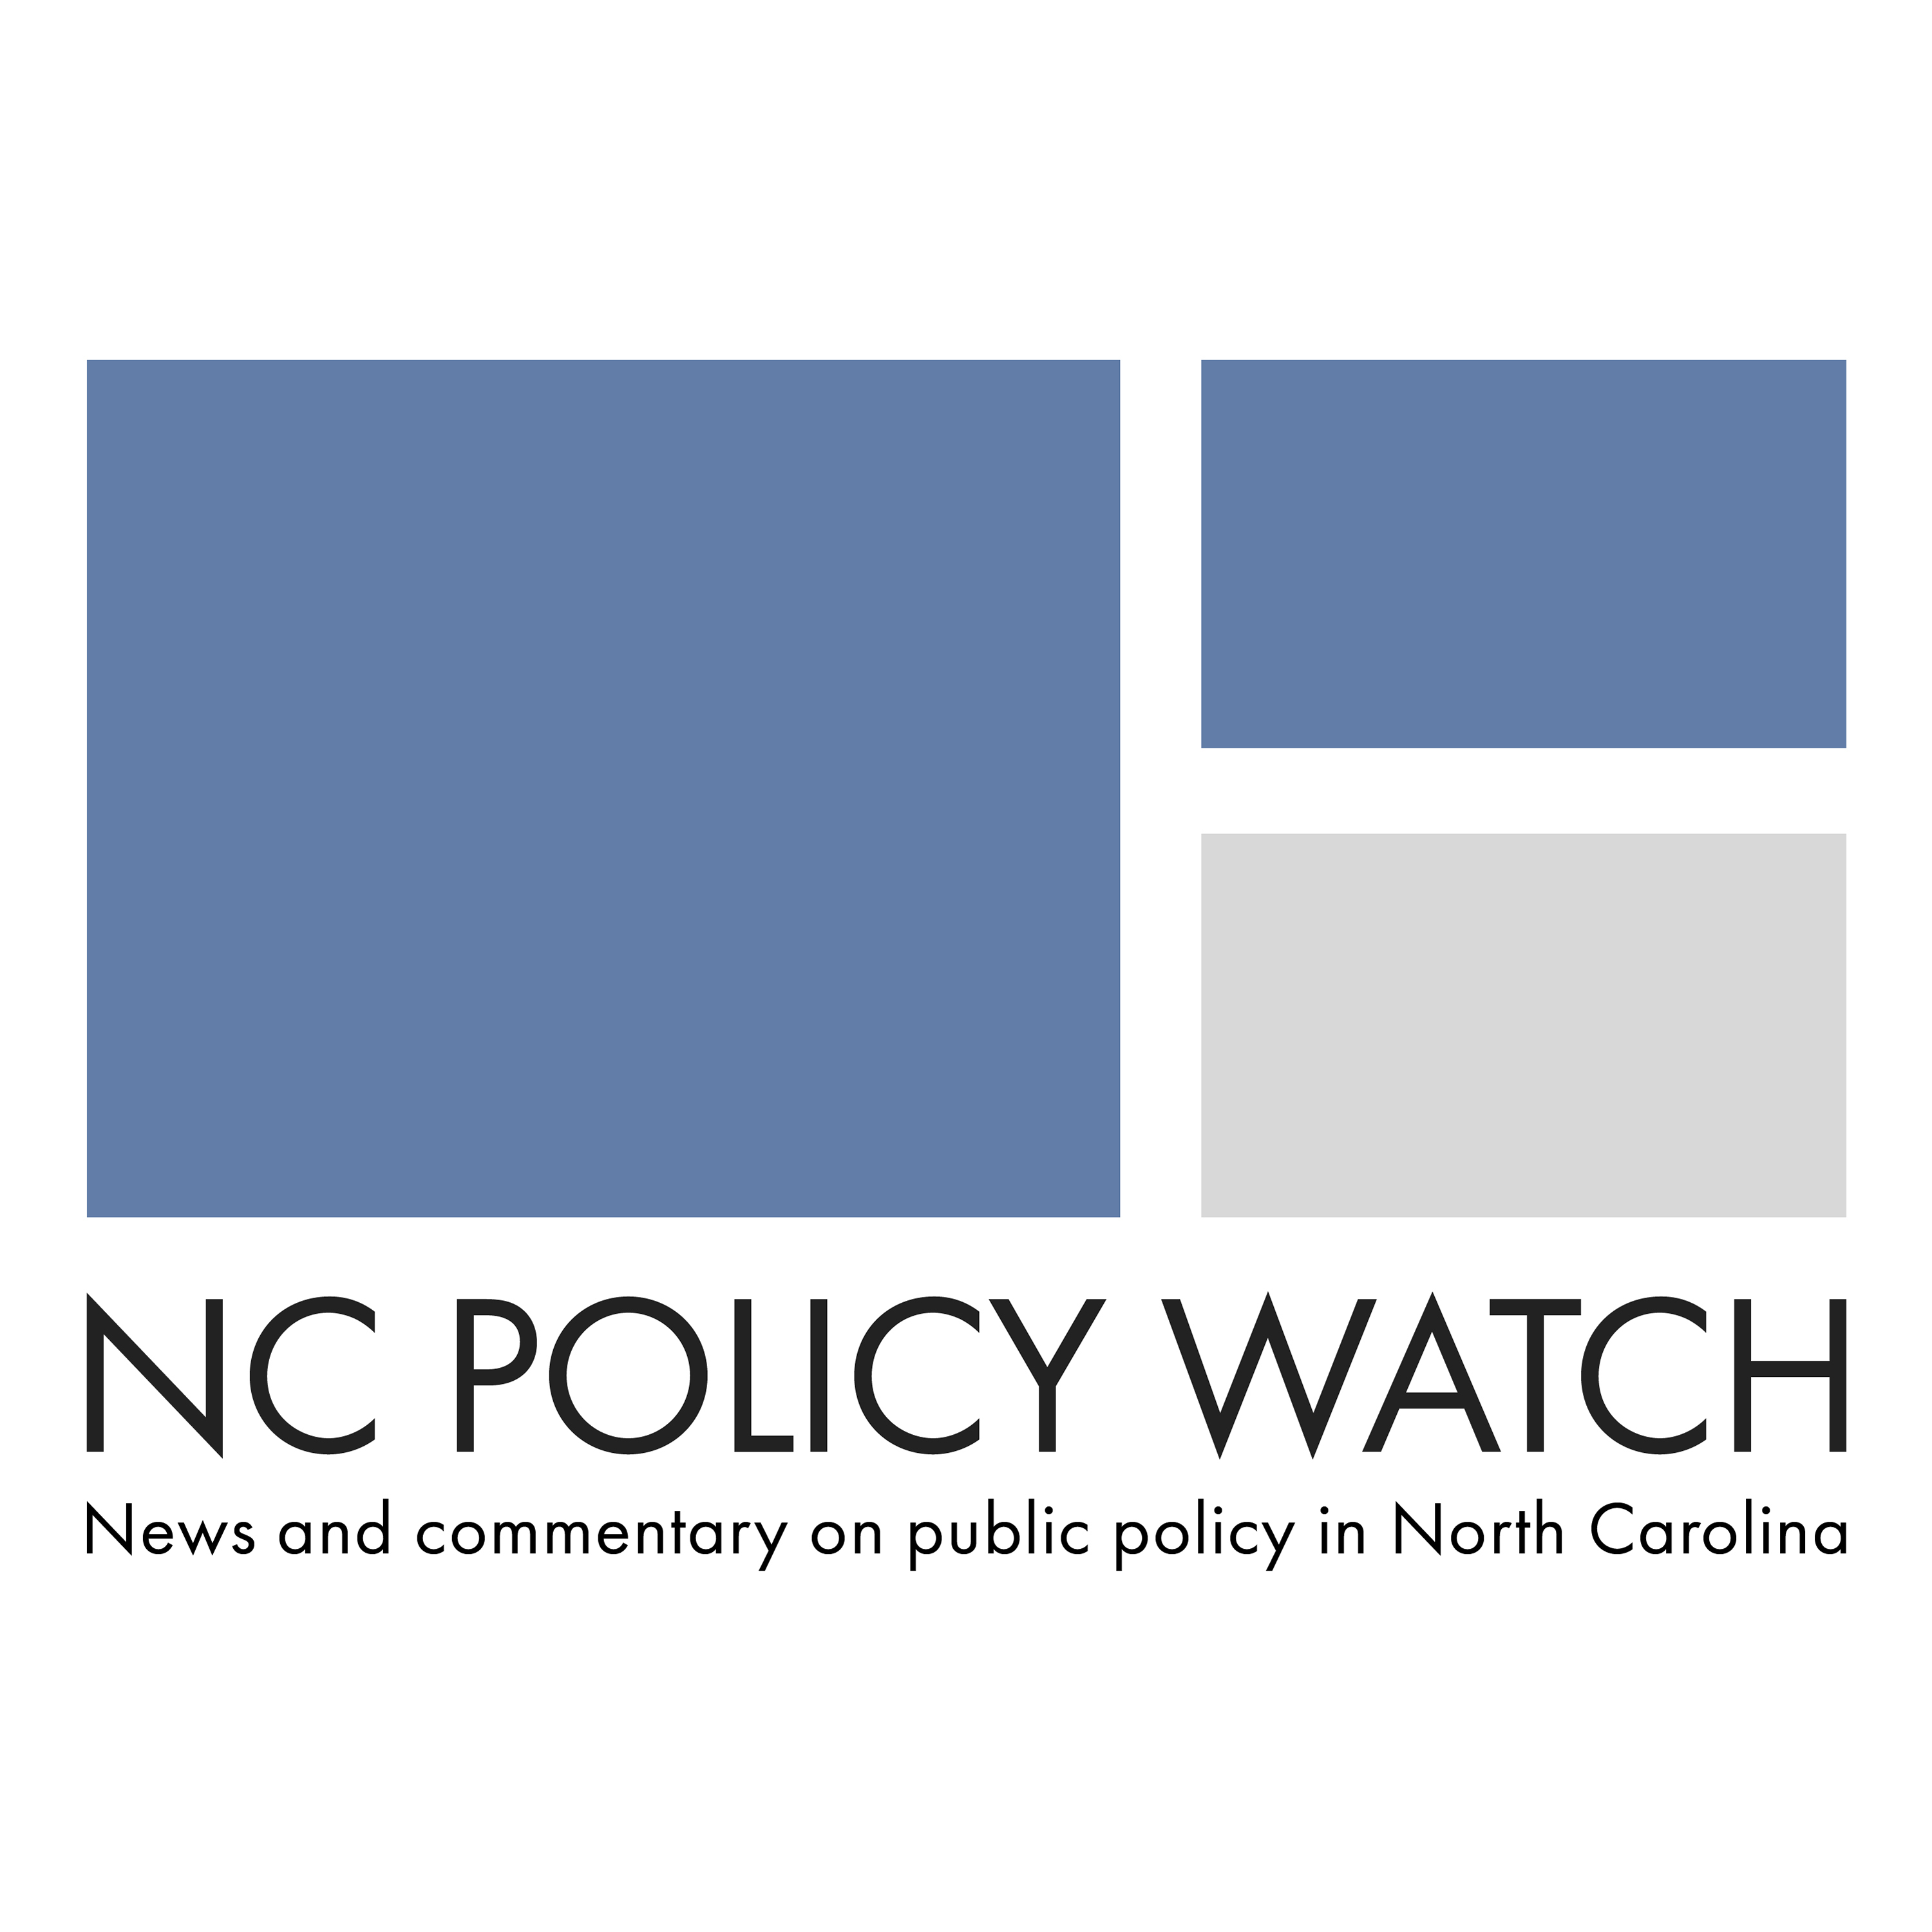 NC Policy Watch